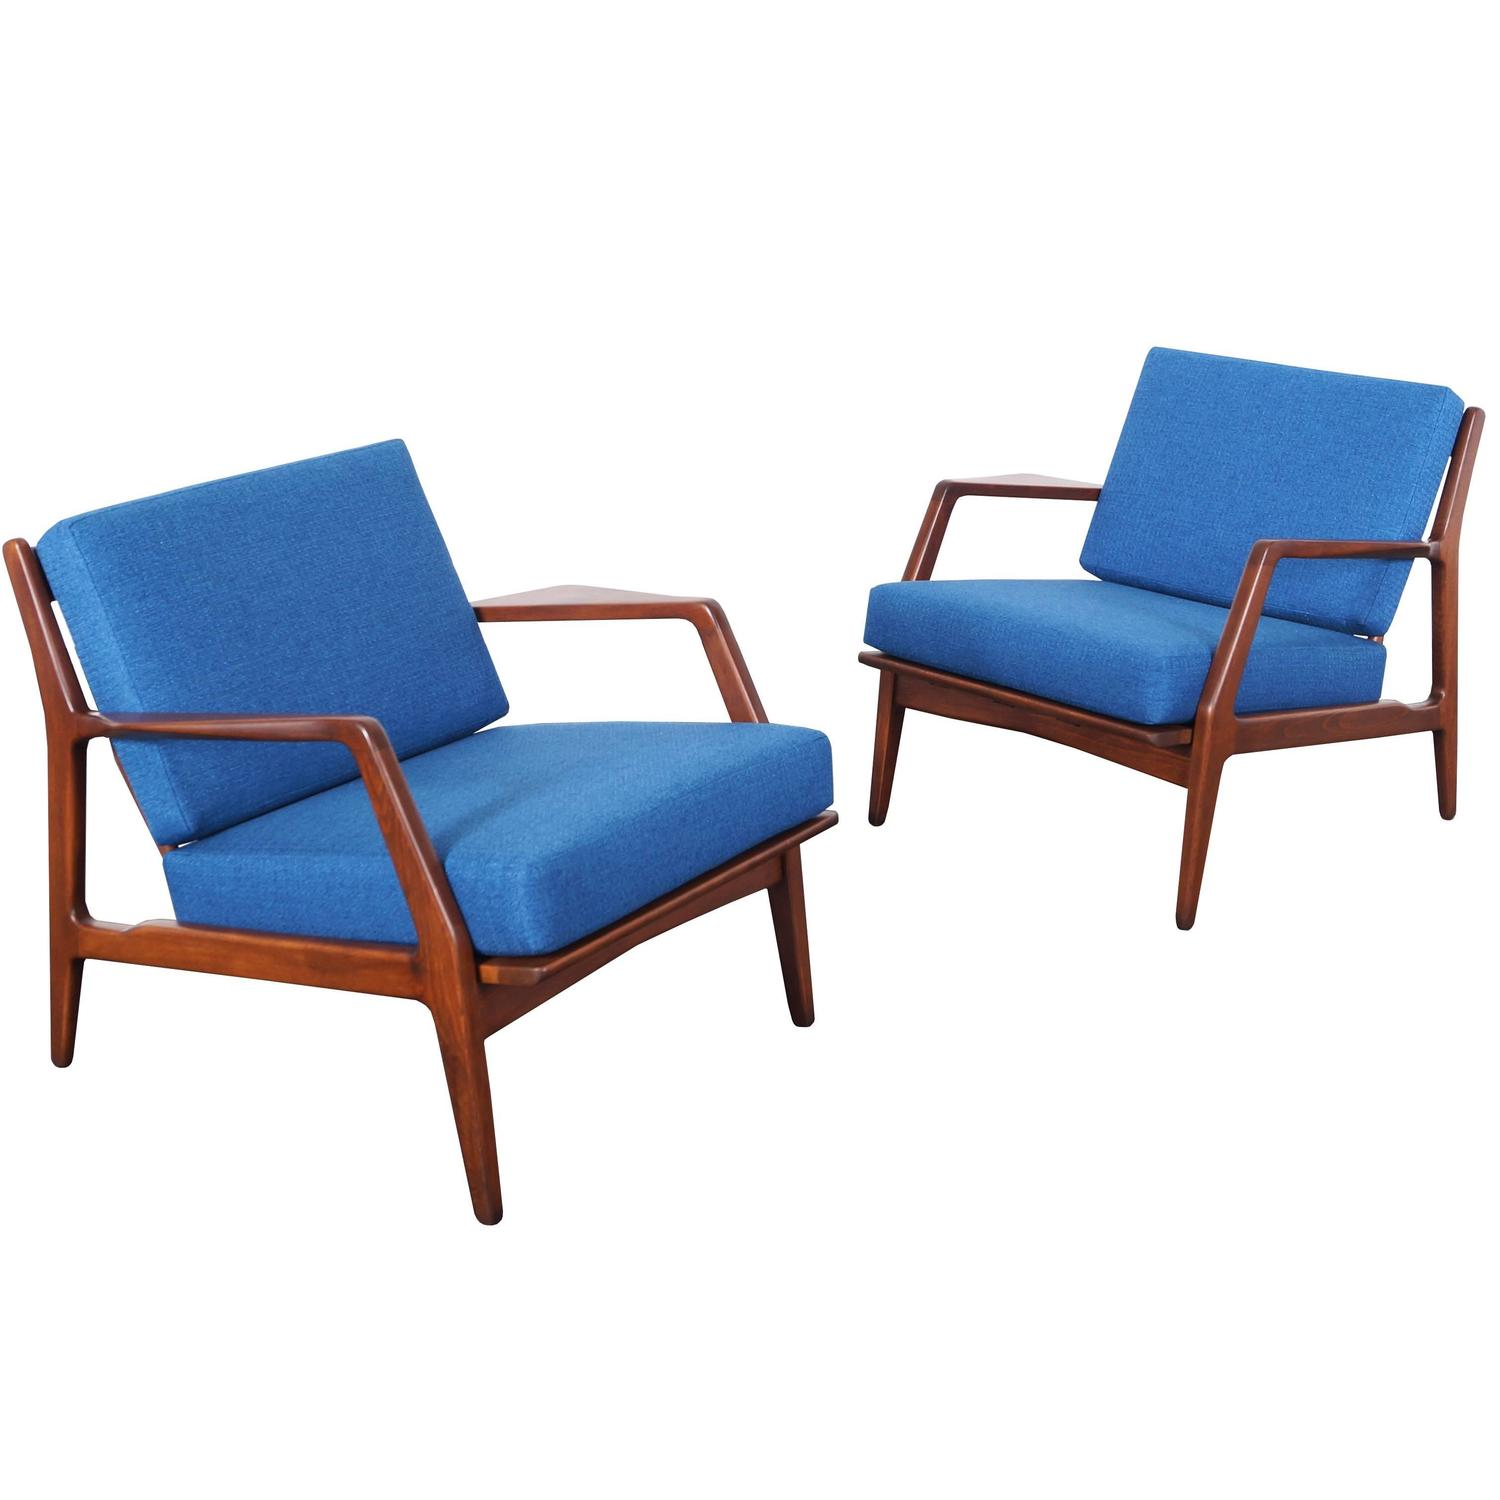 This sculptural pair of lounge chairs by ib kofod larsen is no longer - This Sculptural Pair Of Lounge Chairs By Ib Kofod Larsen Is No Longer 1